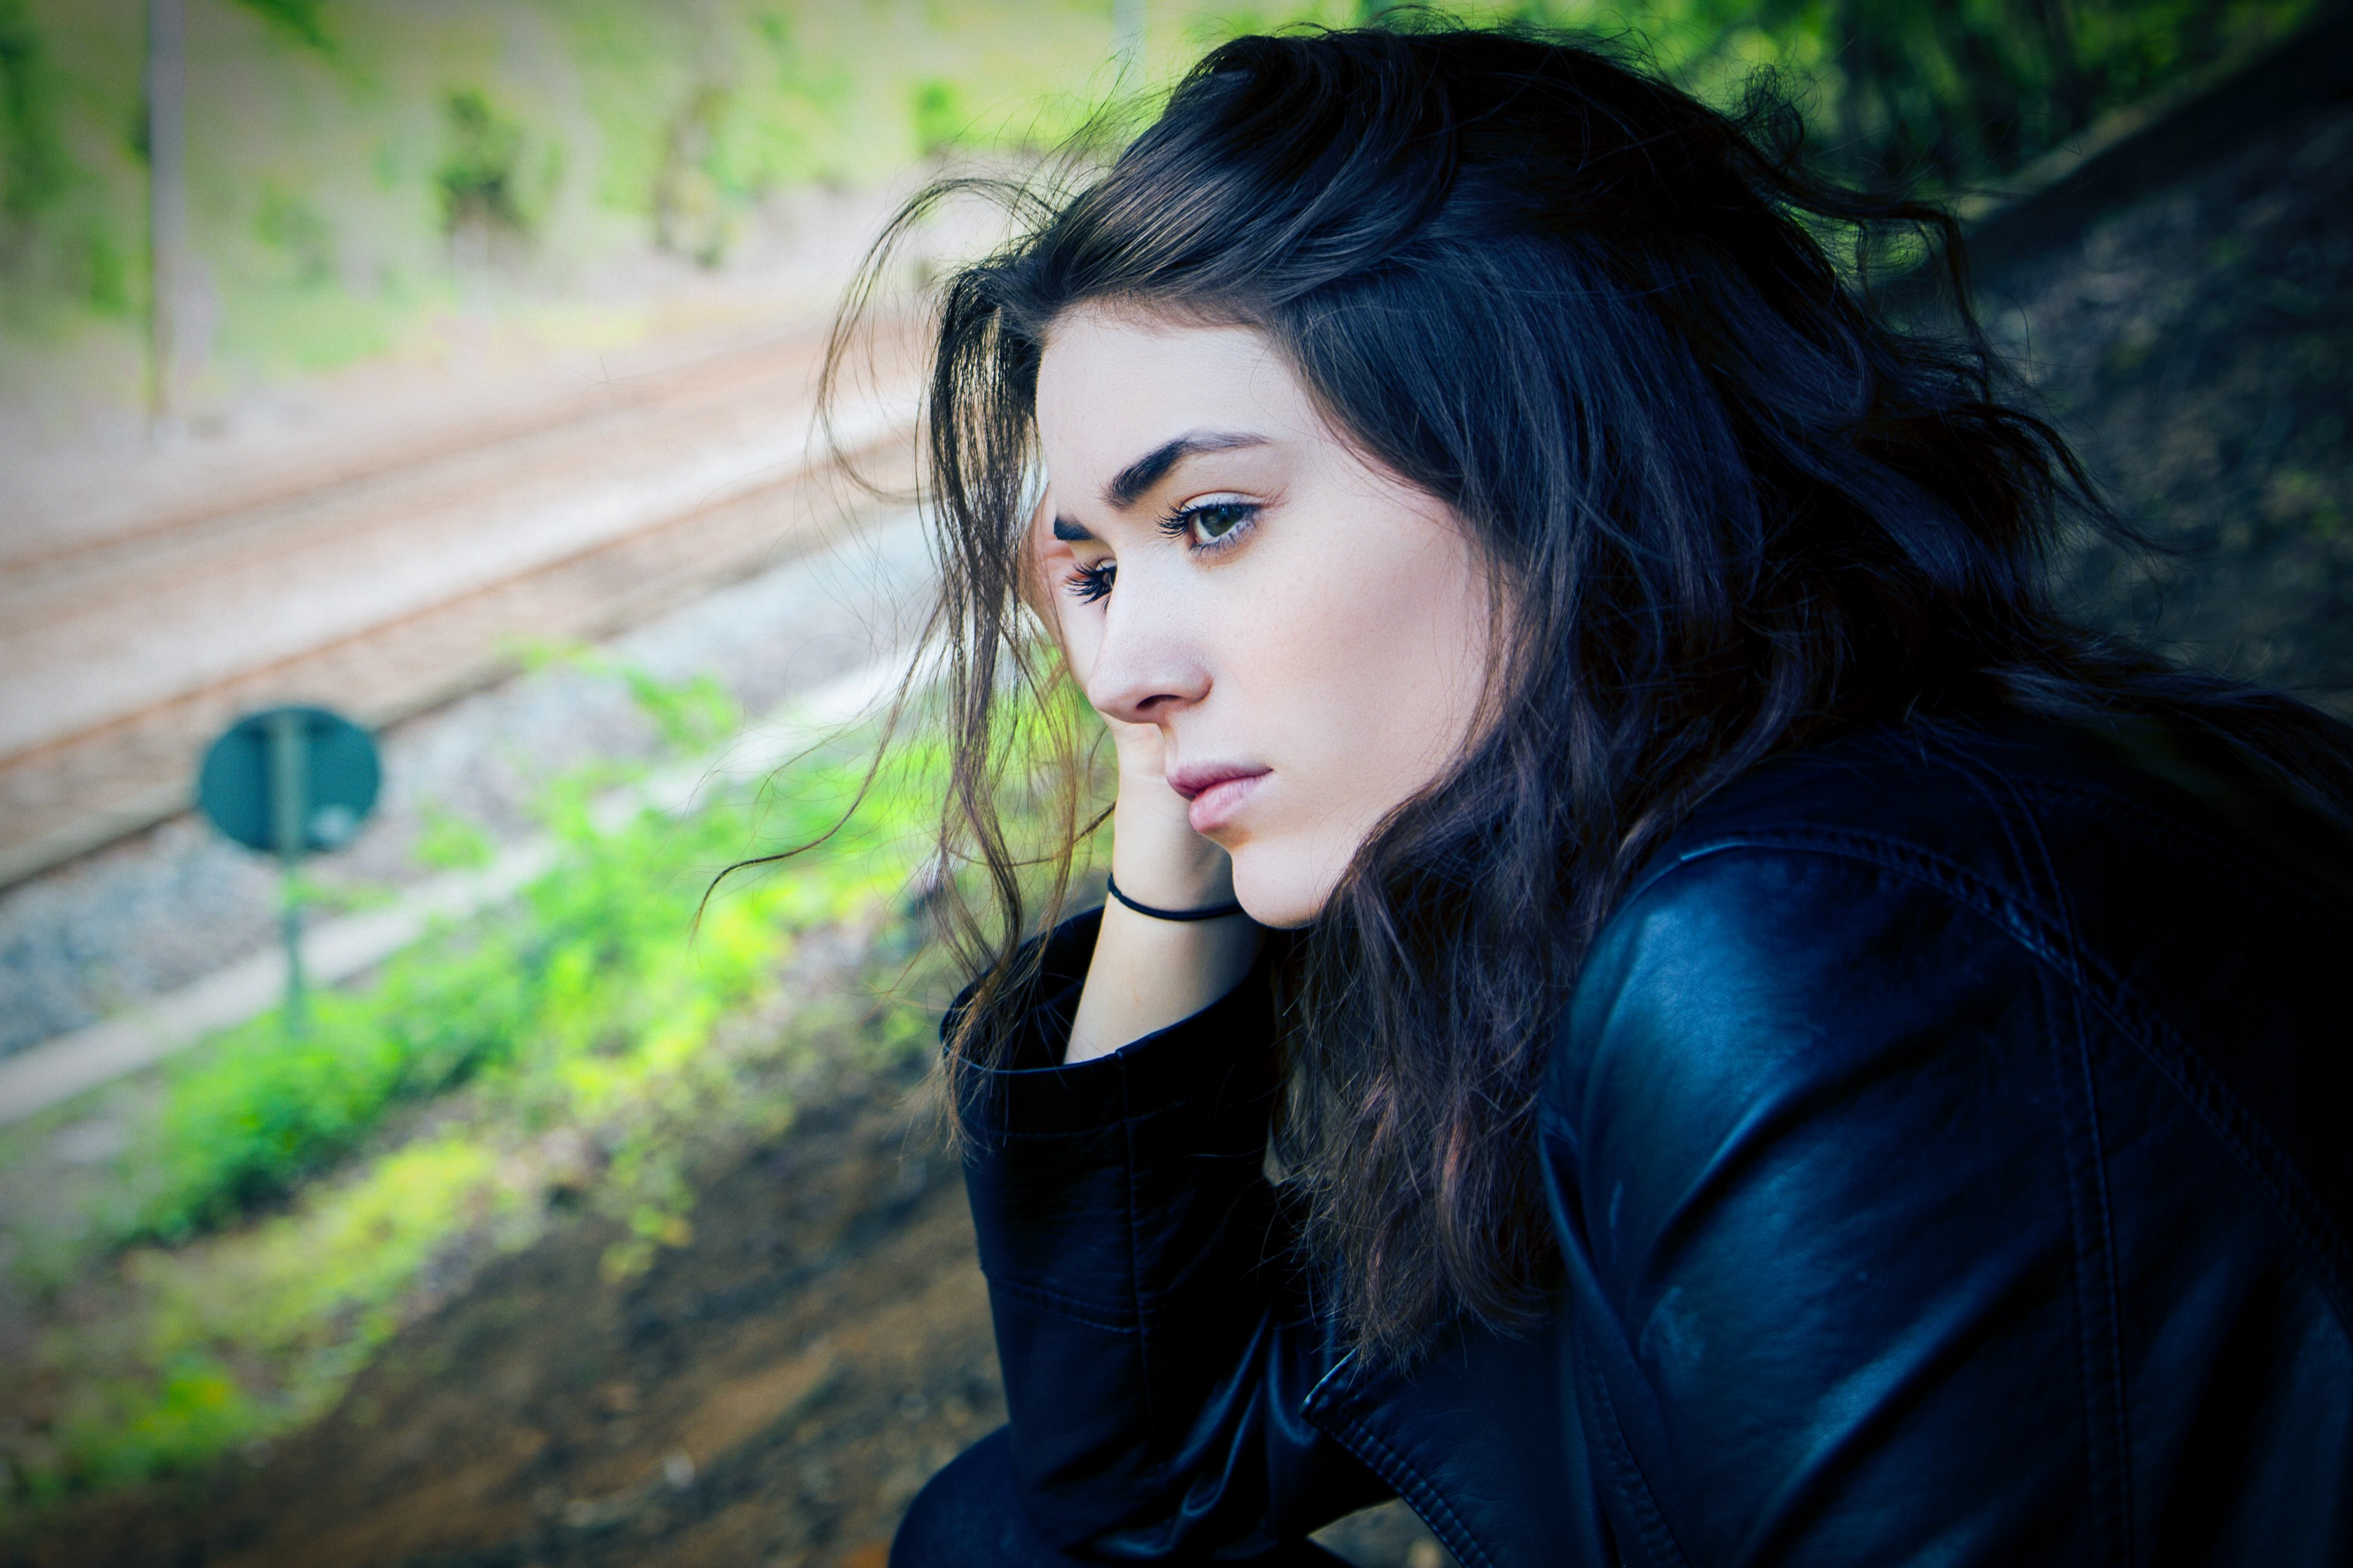 girl with long dark hair wearing black leather jacket looking thoughtful